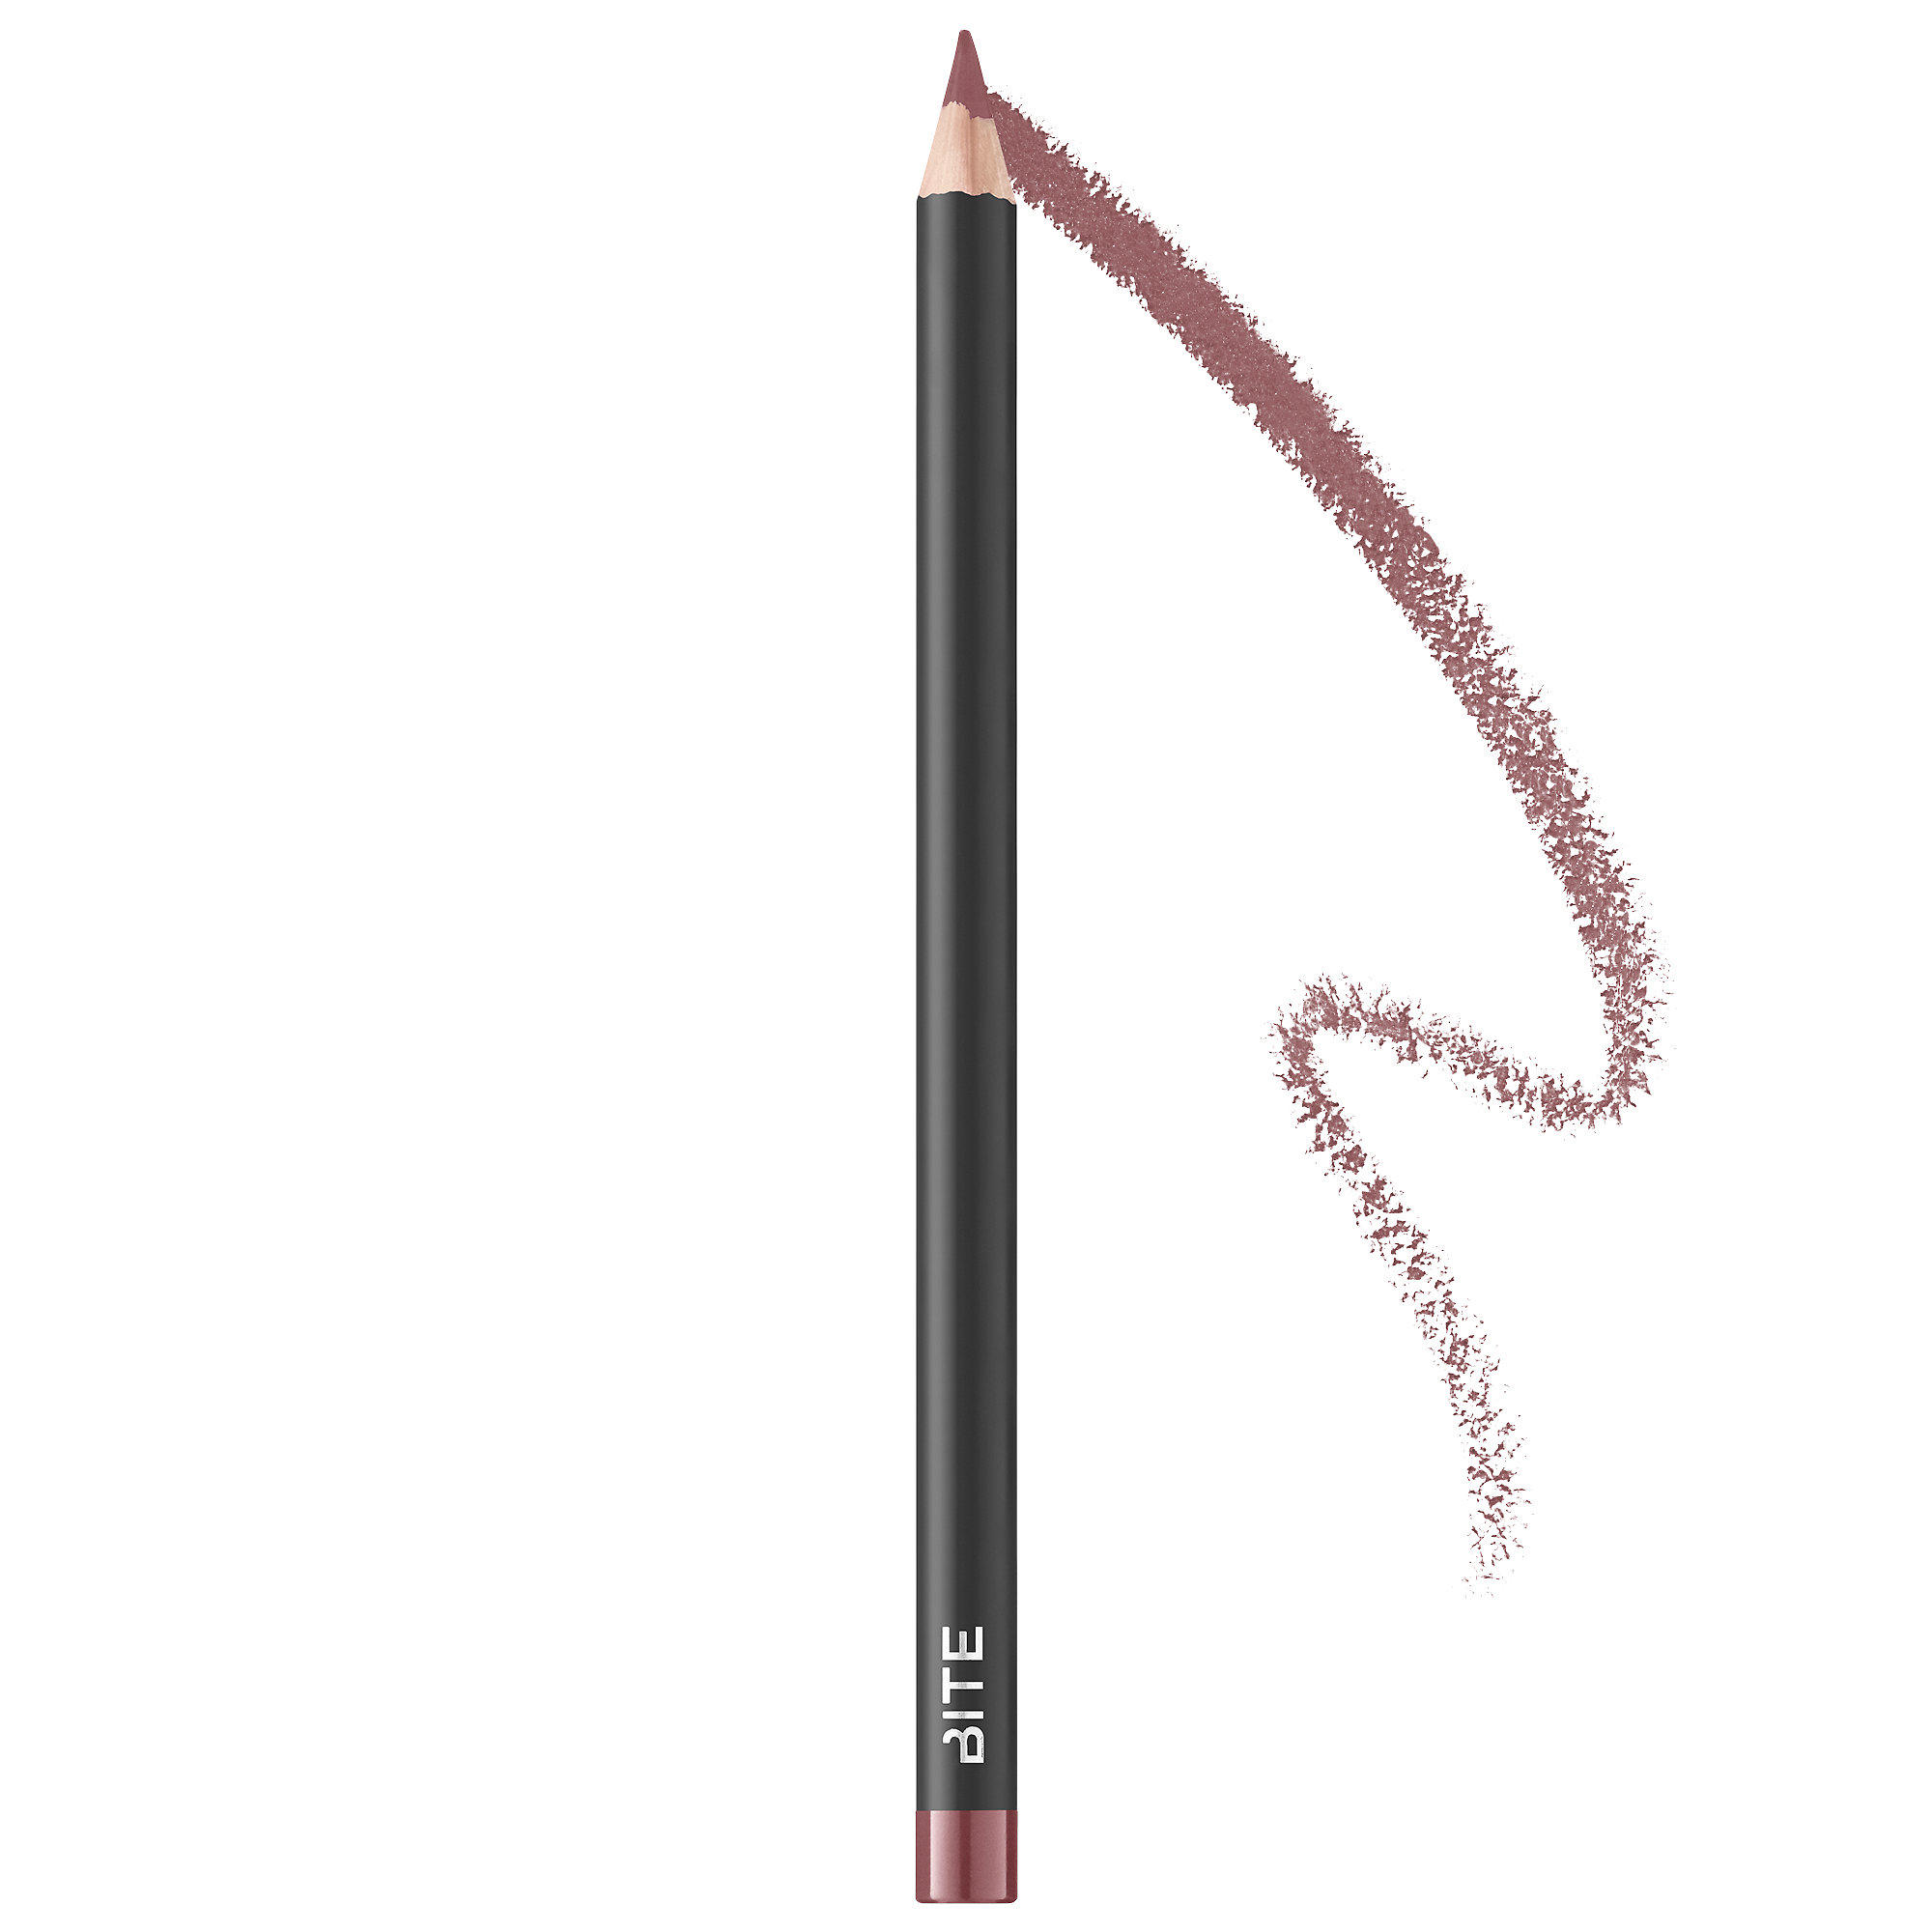 Bite Beauty The Lip Pencil Plum Taupe 012